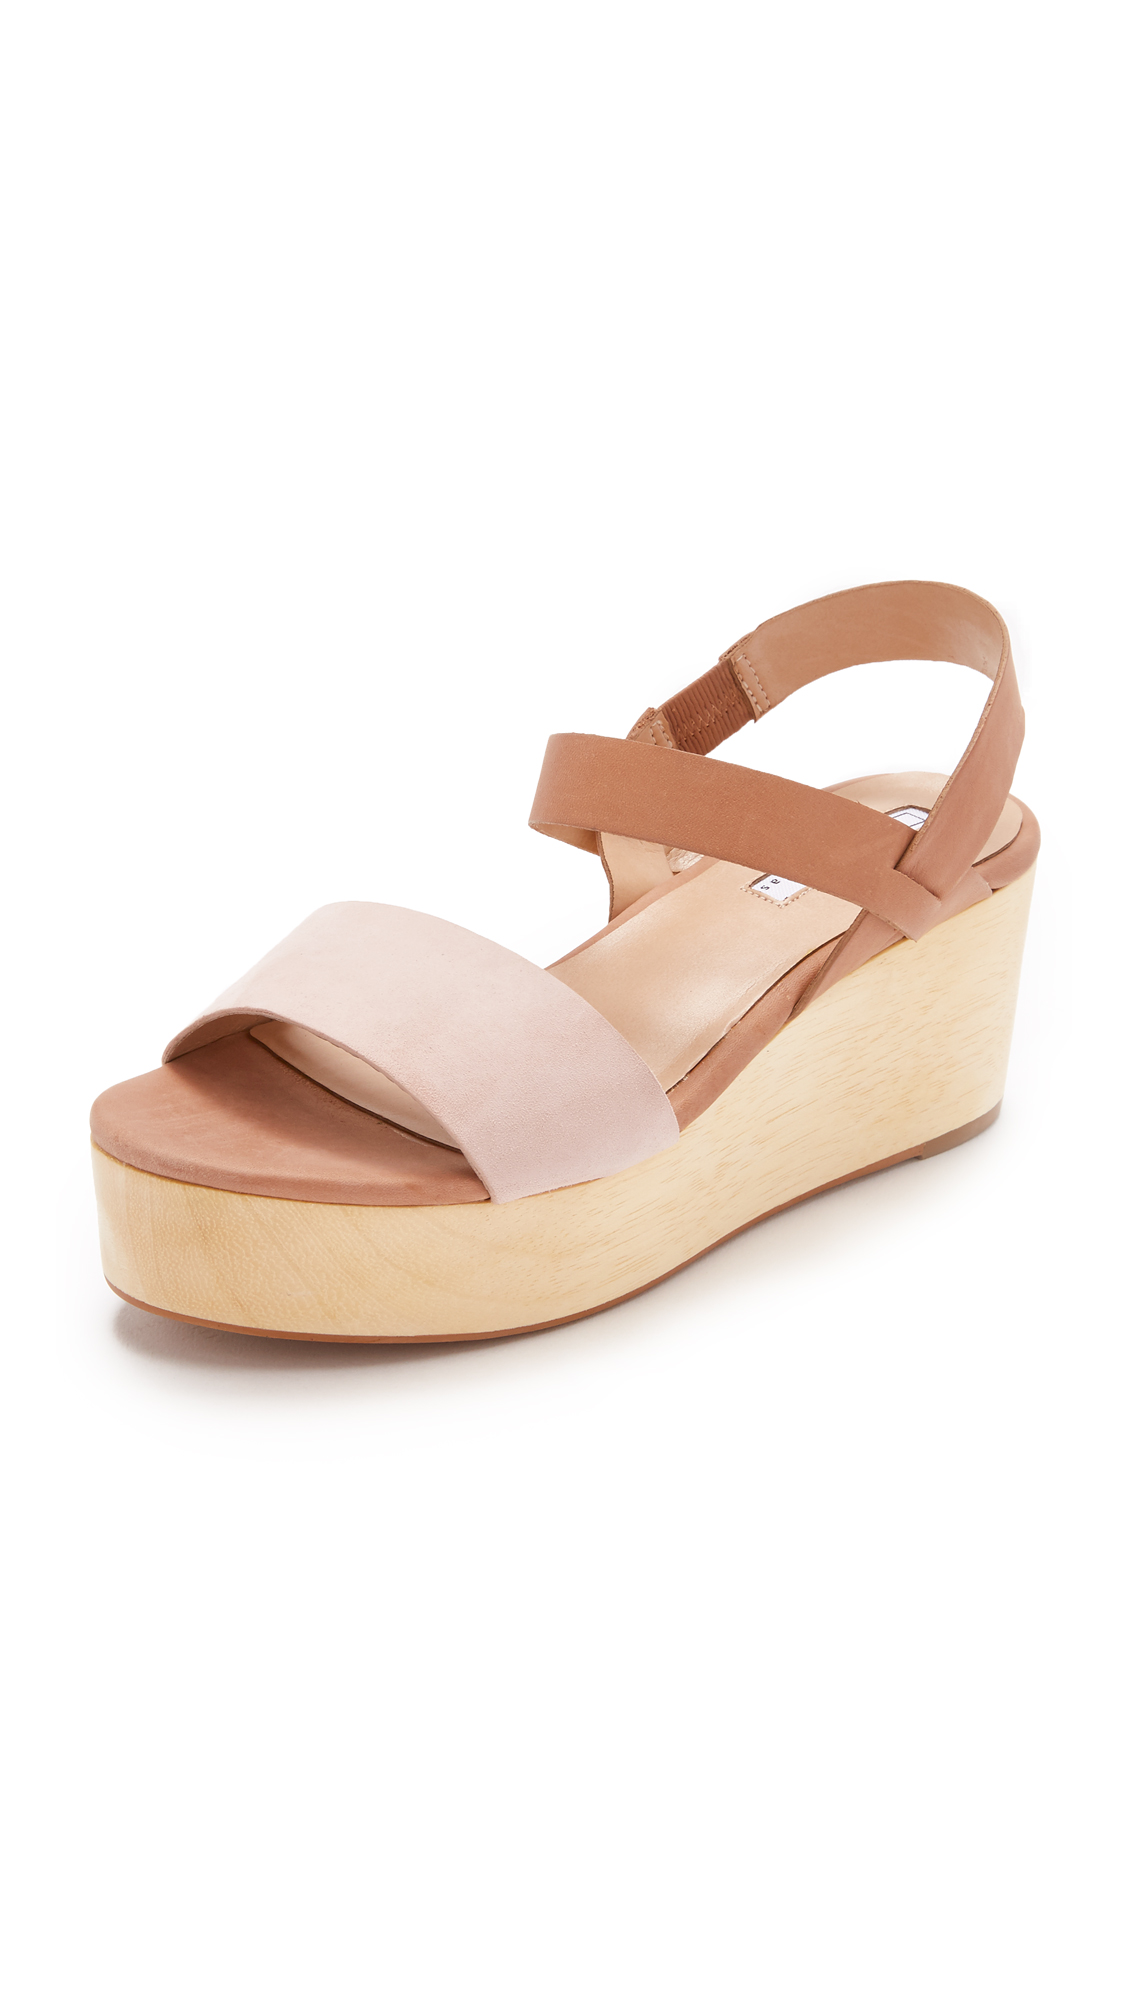 Blank Canvas Slingback Wood Day Wedges - Wheat/Blush at Shopbop